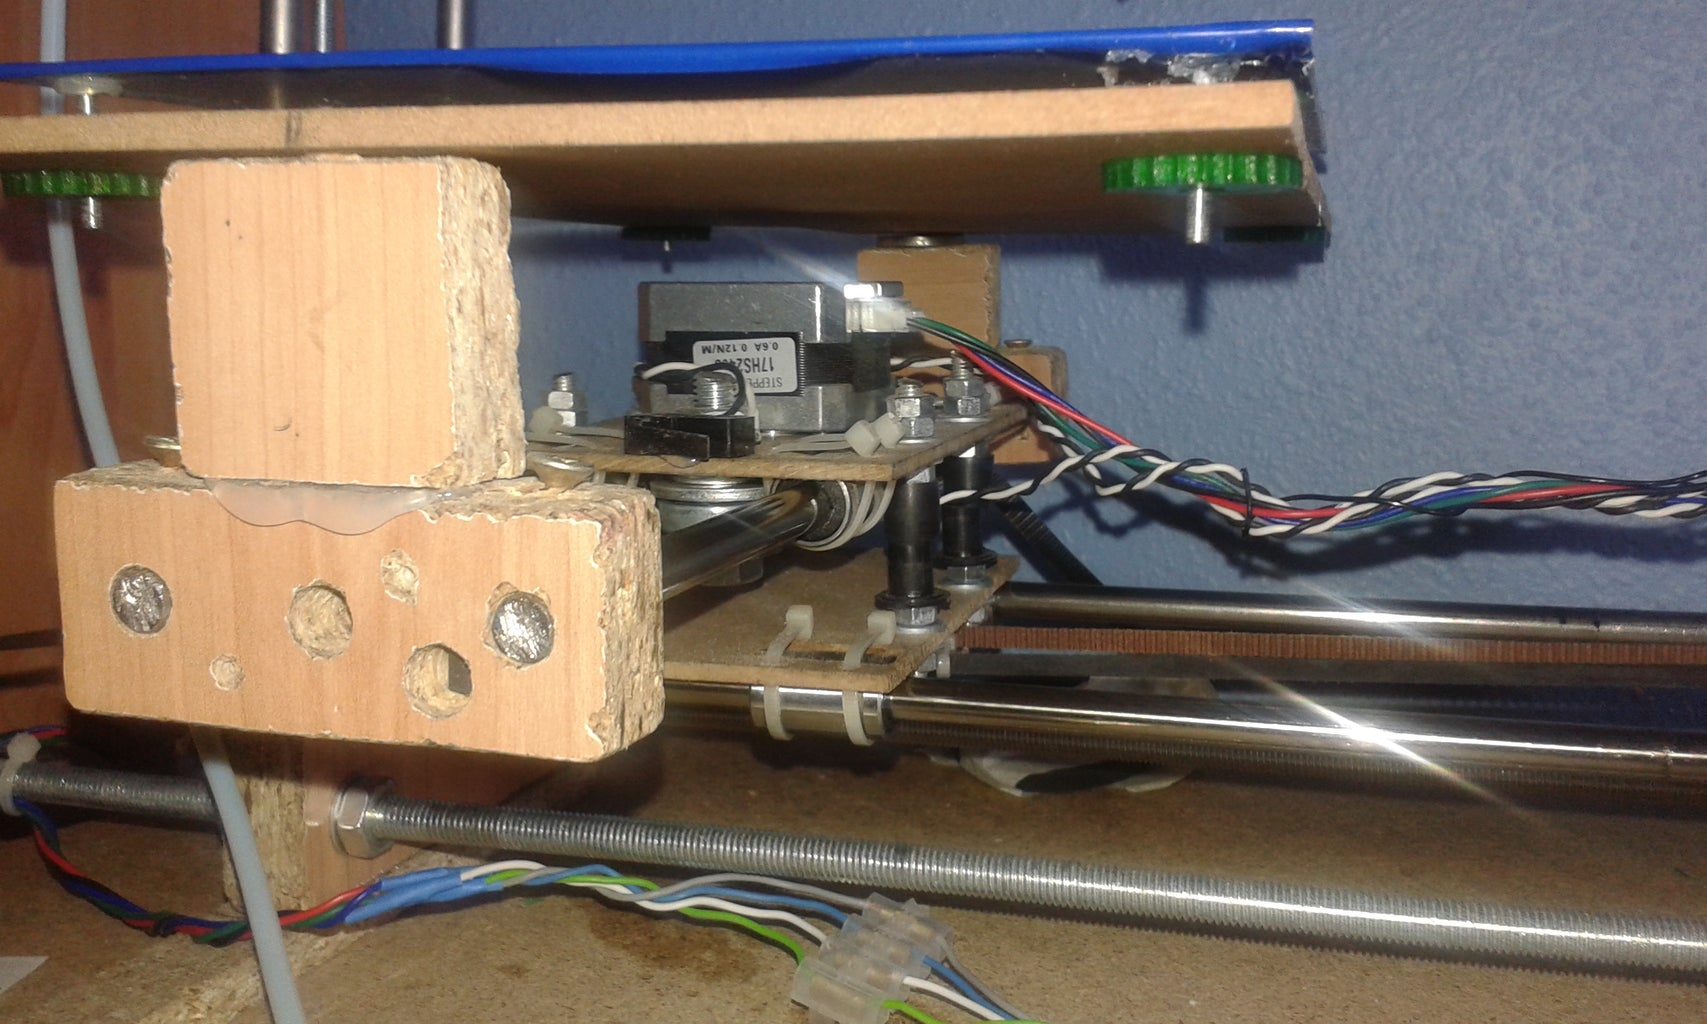 Step 4: Print and Assembly Version 2